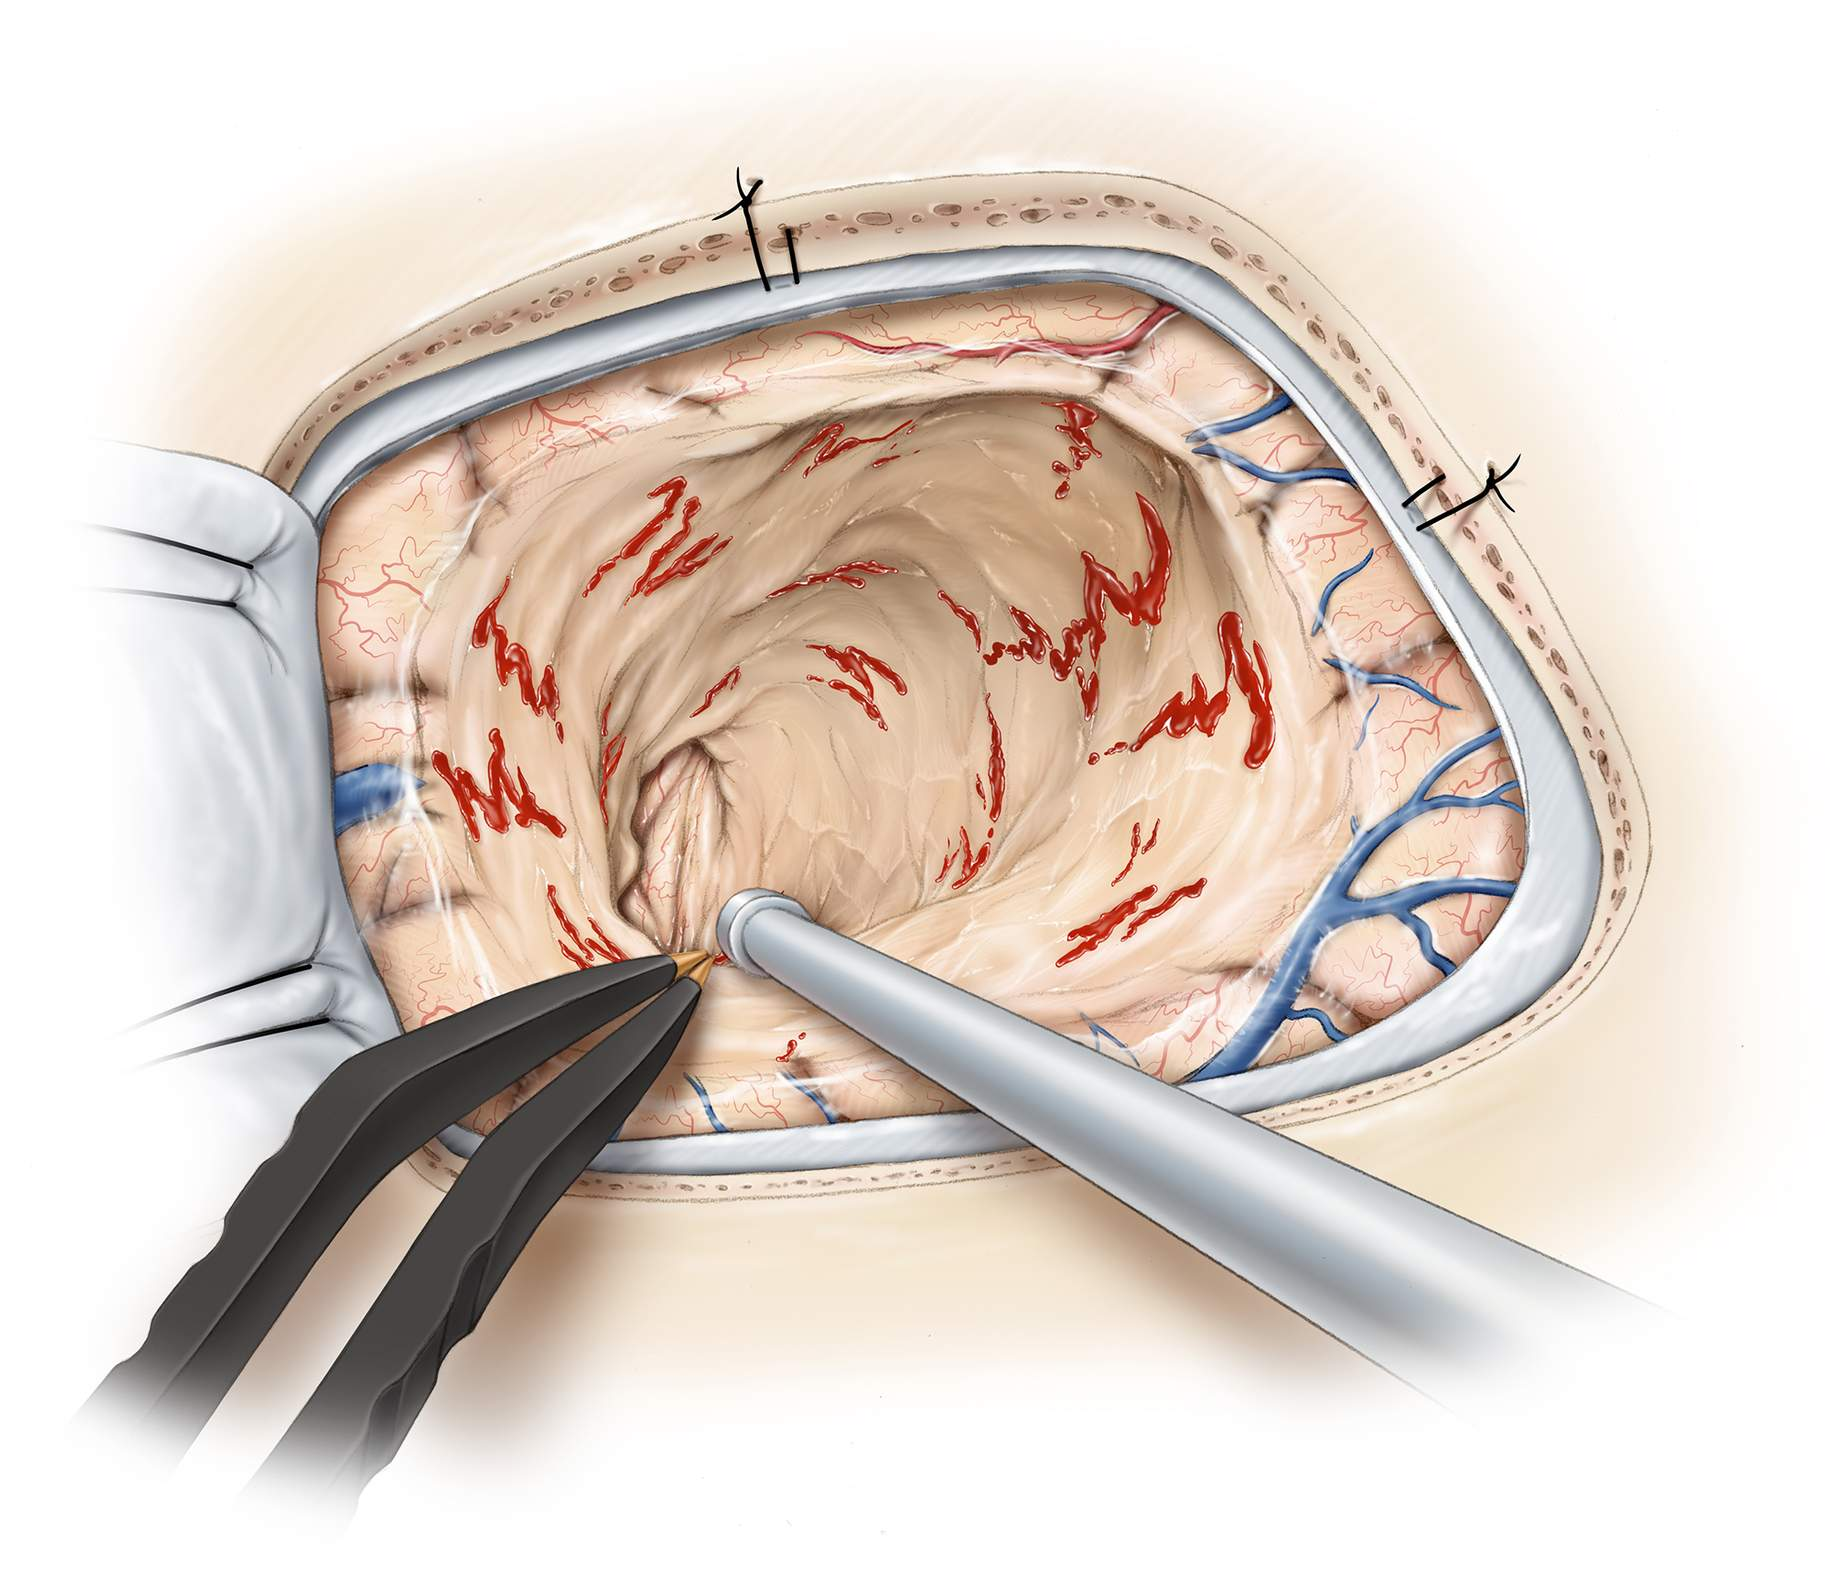 Figure 10: A careful examination of the resection cavity is warranted to exclude any remnants. The opening into the right frontal ventricle is apparent. The surrounding rim of the hemosiderin-laden gliosis should be resected as this maneuver provides the best opportunity for seizure freedom after surgery.